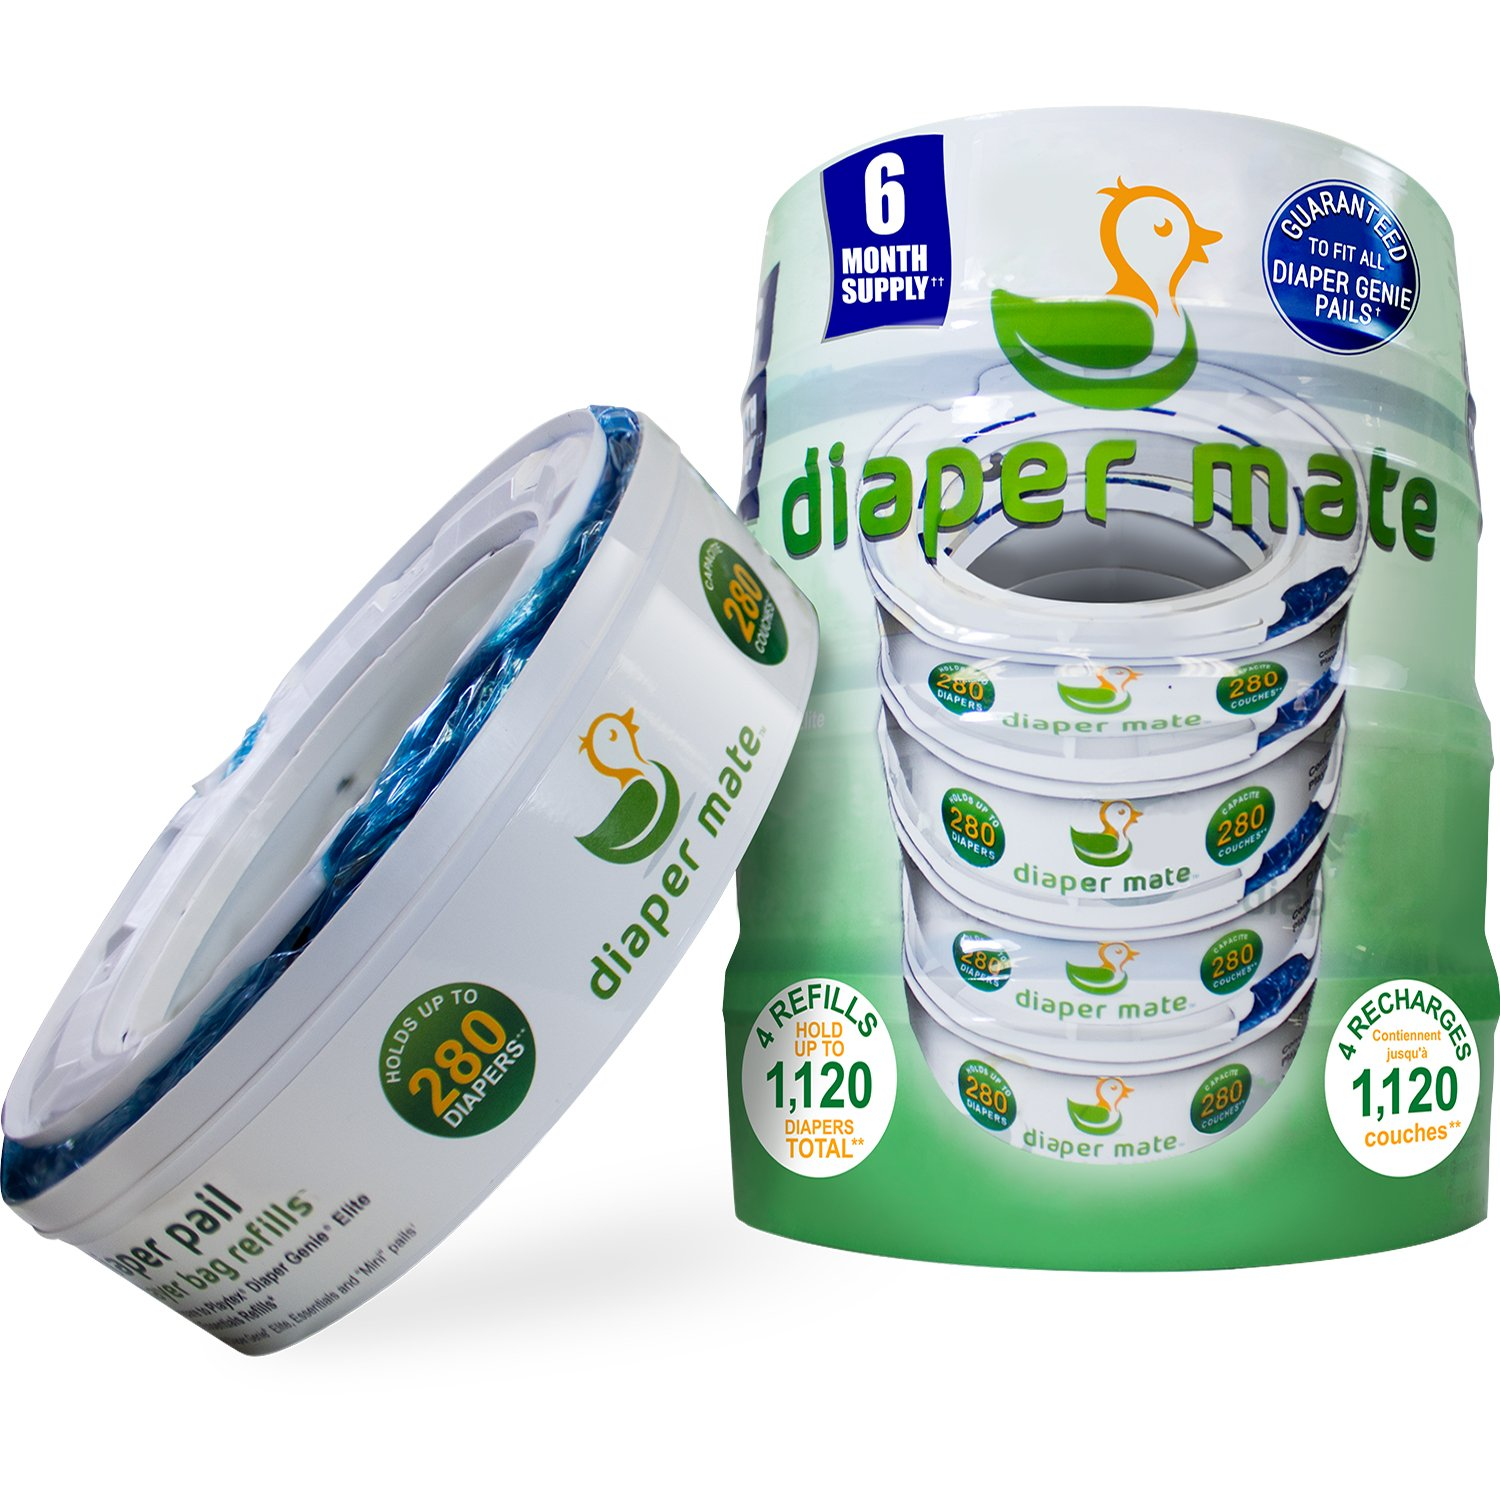 Crib for sale bacolod - Diaper Mate Refill For Diaper Genie Diaper Pails 4 Pack